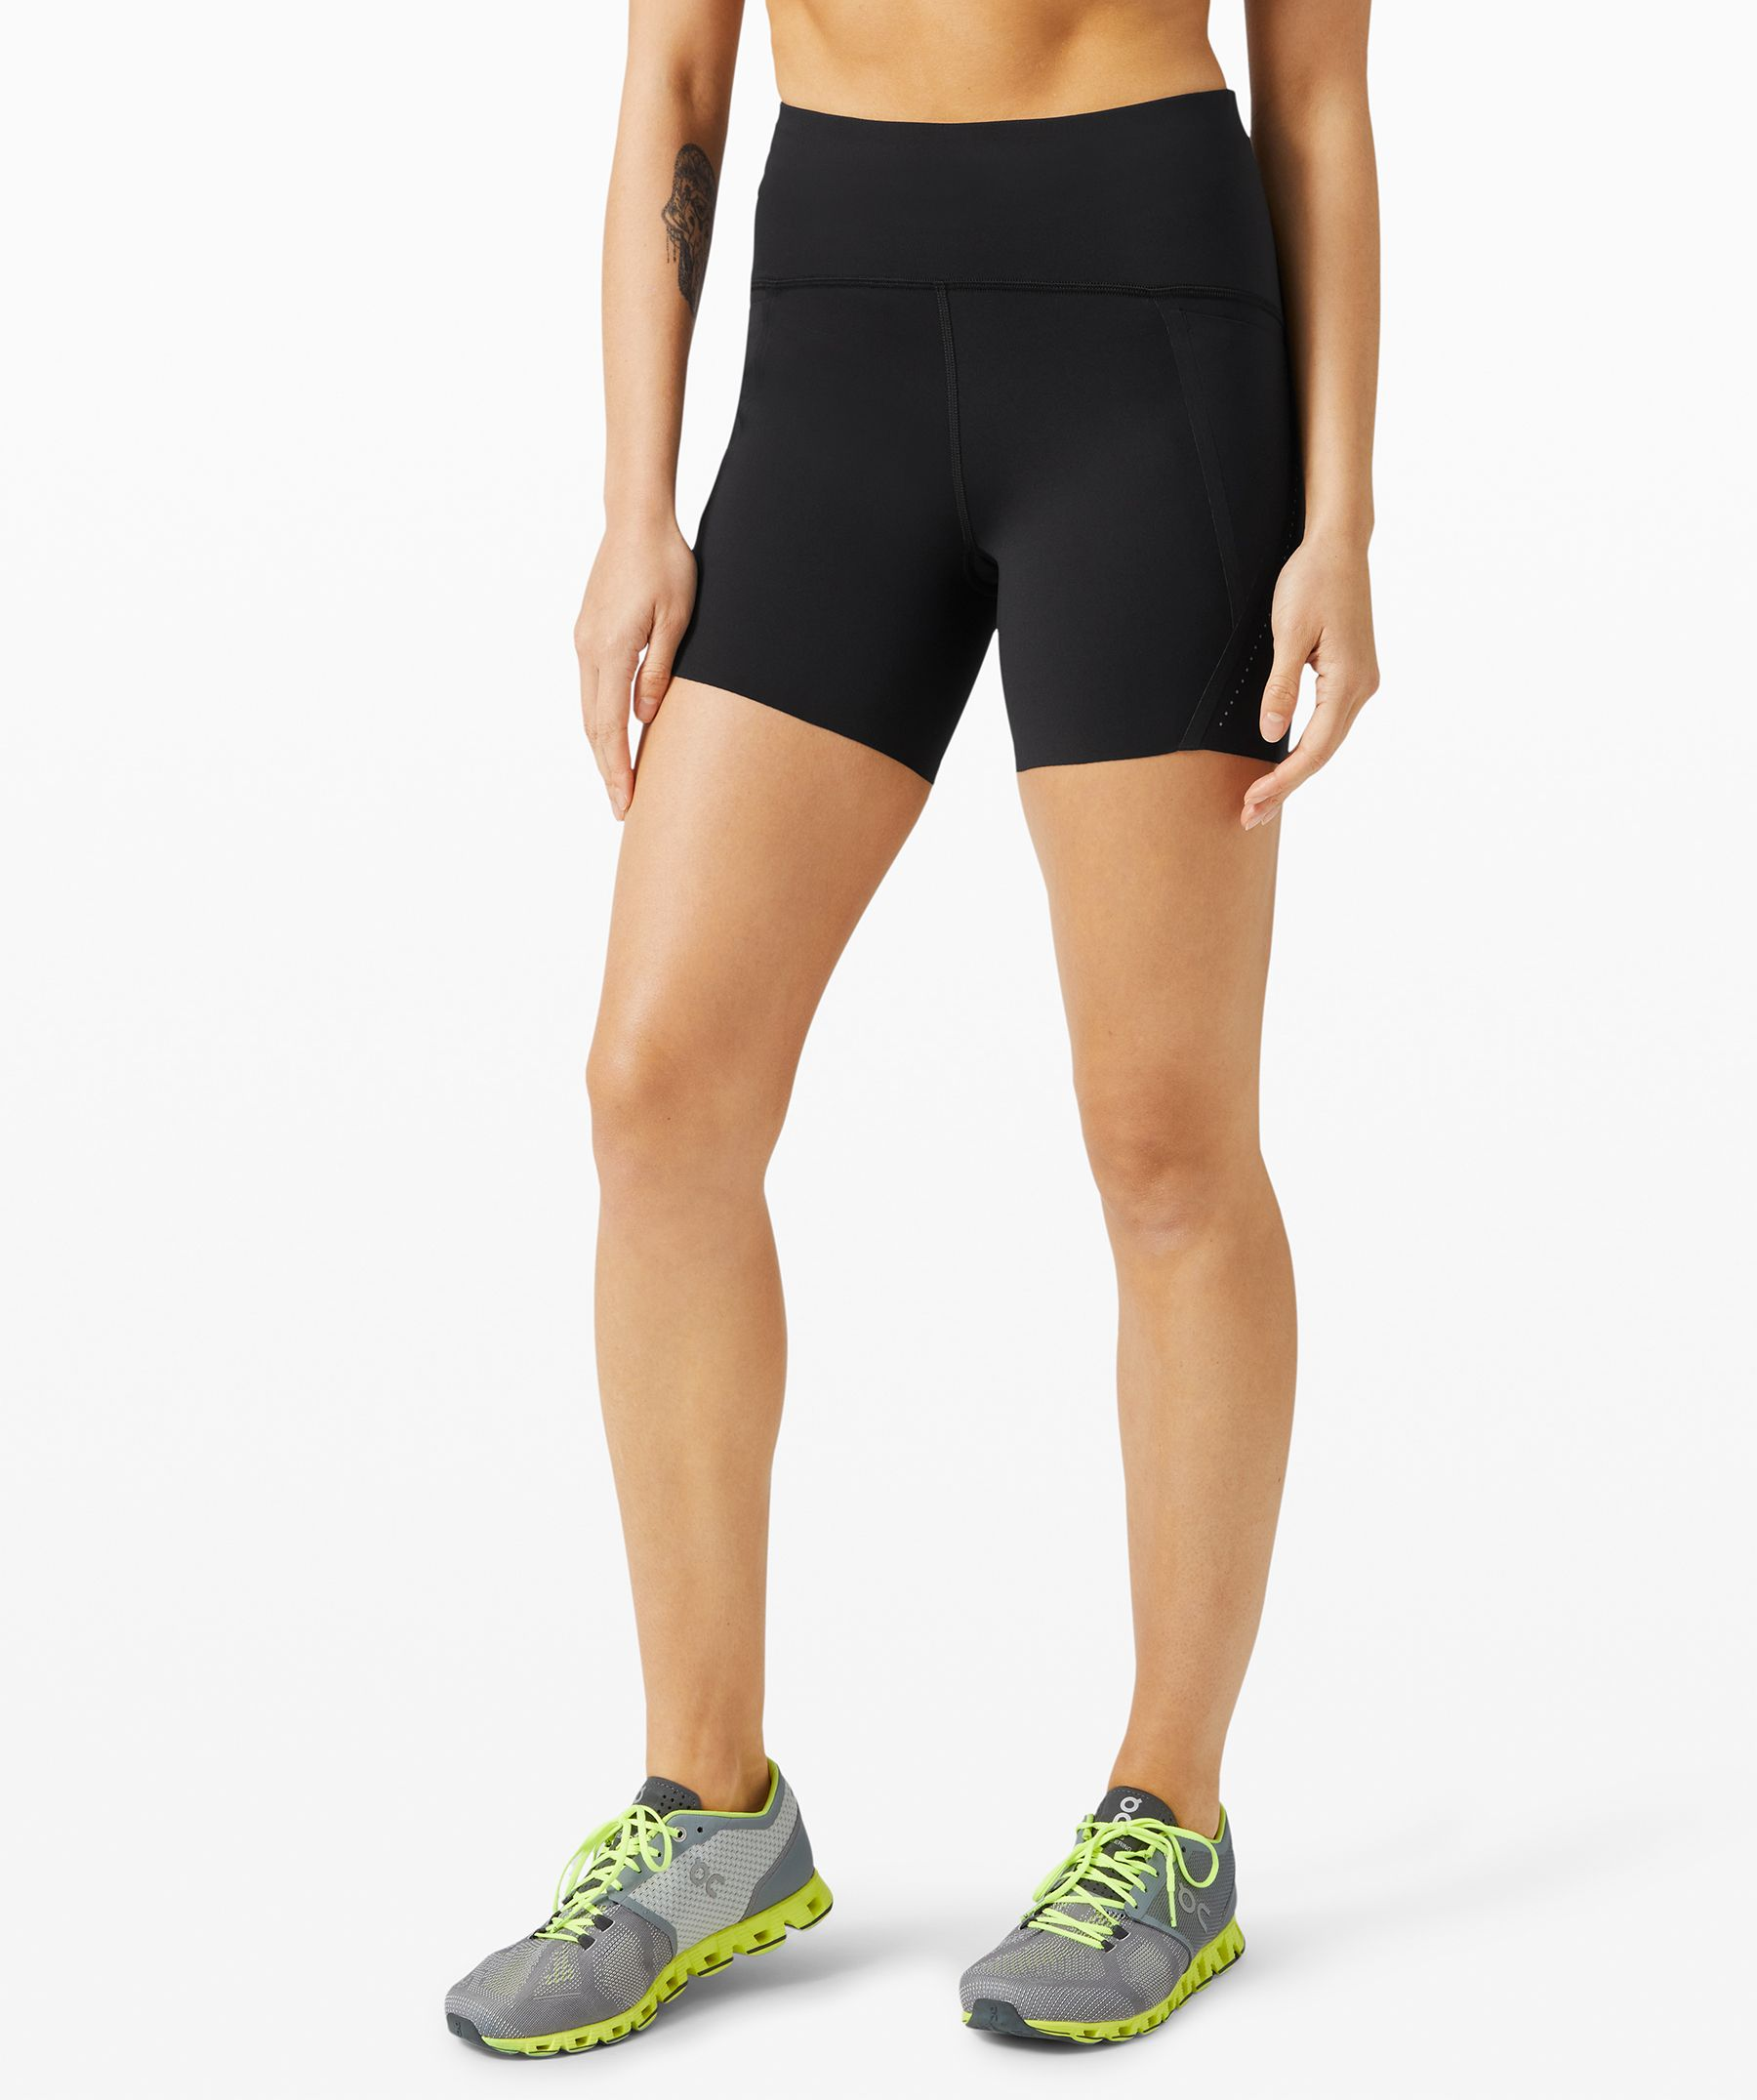 Don\\\'t let delayering break  your pace. These sleek shorts  feature lots of storage  options, ultrasonic seams, and  no seam at all on the inner  thigh for a smooth stride.